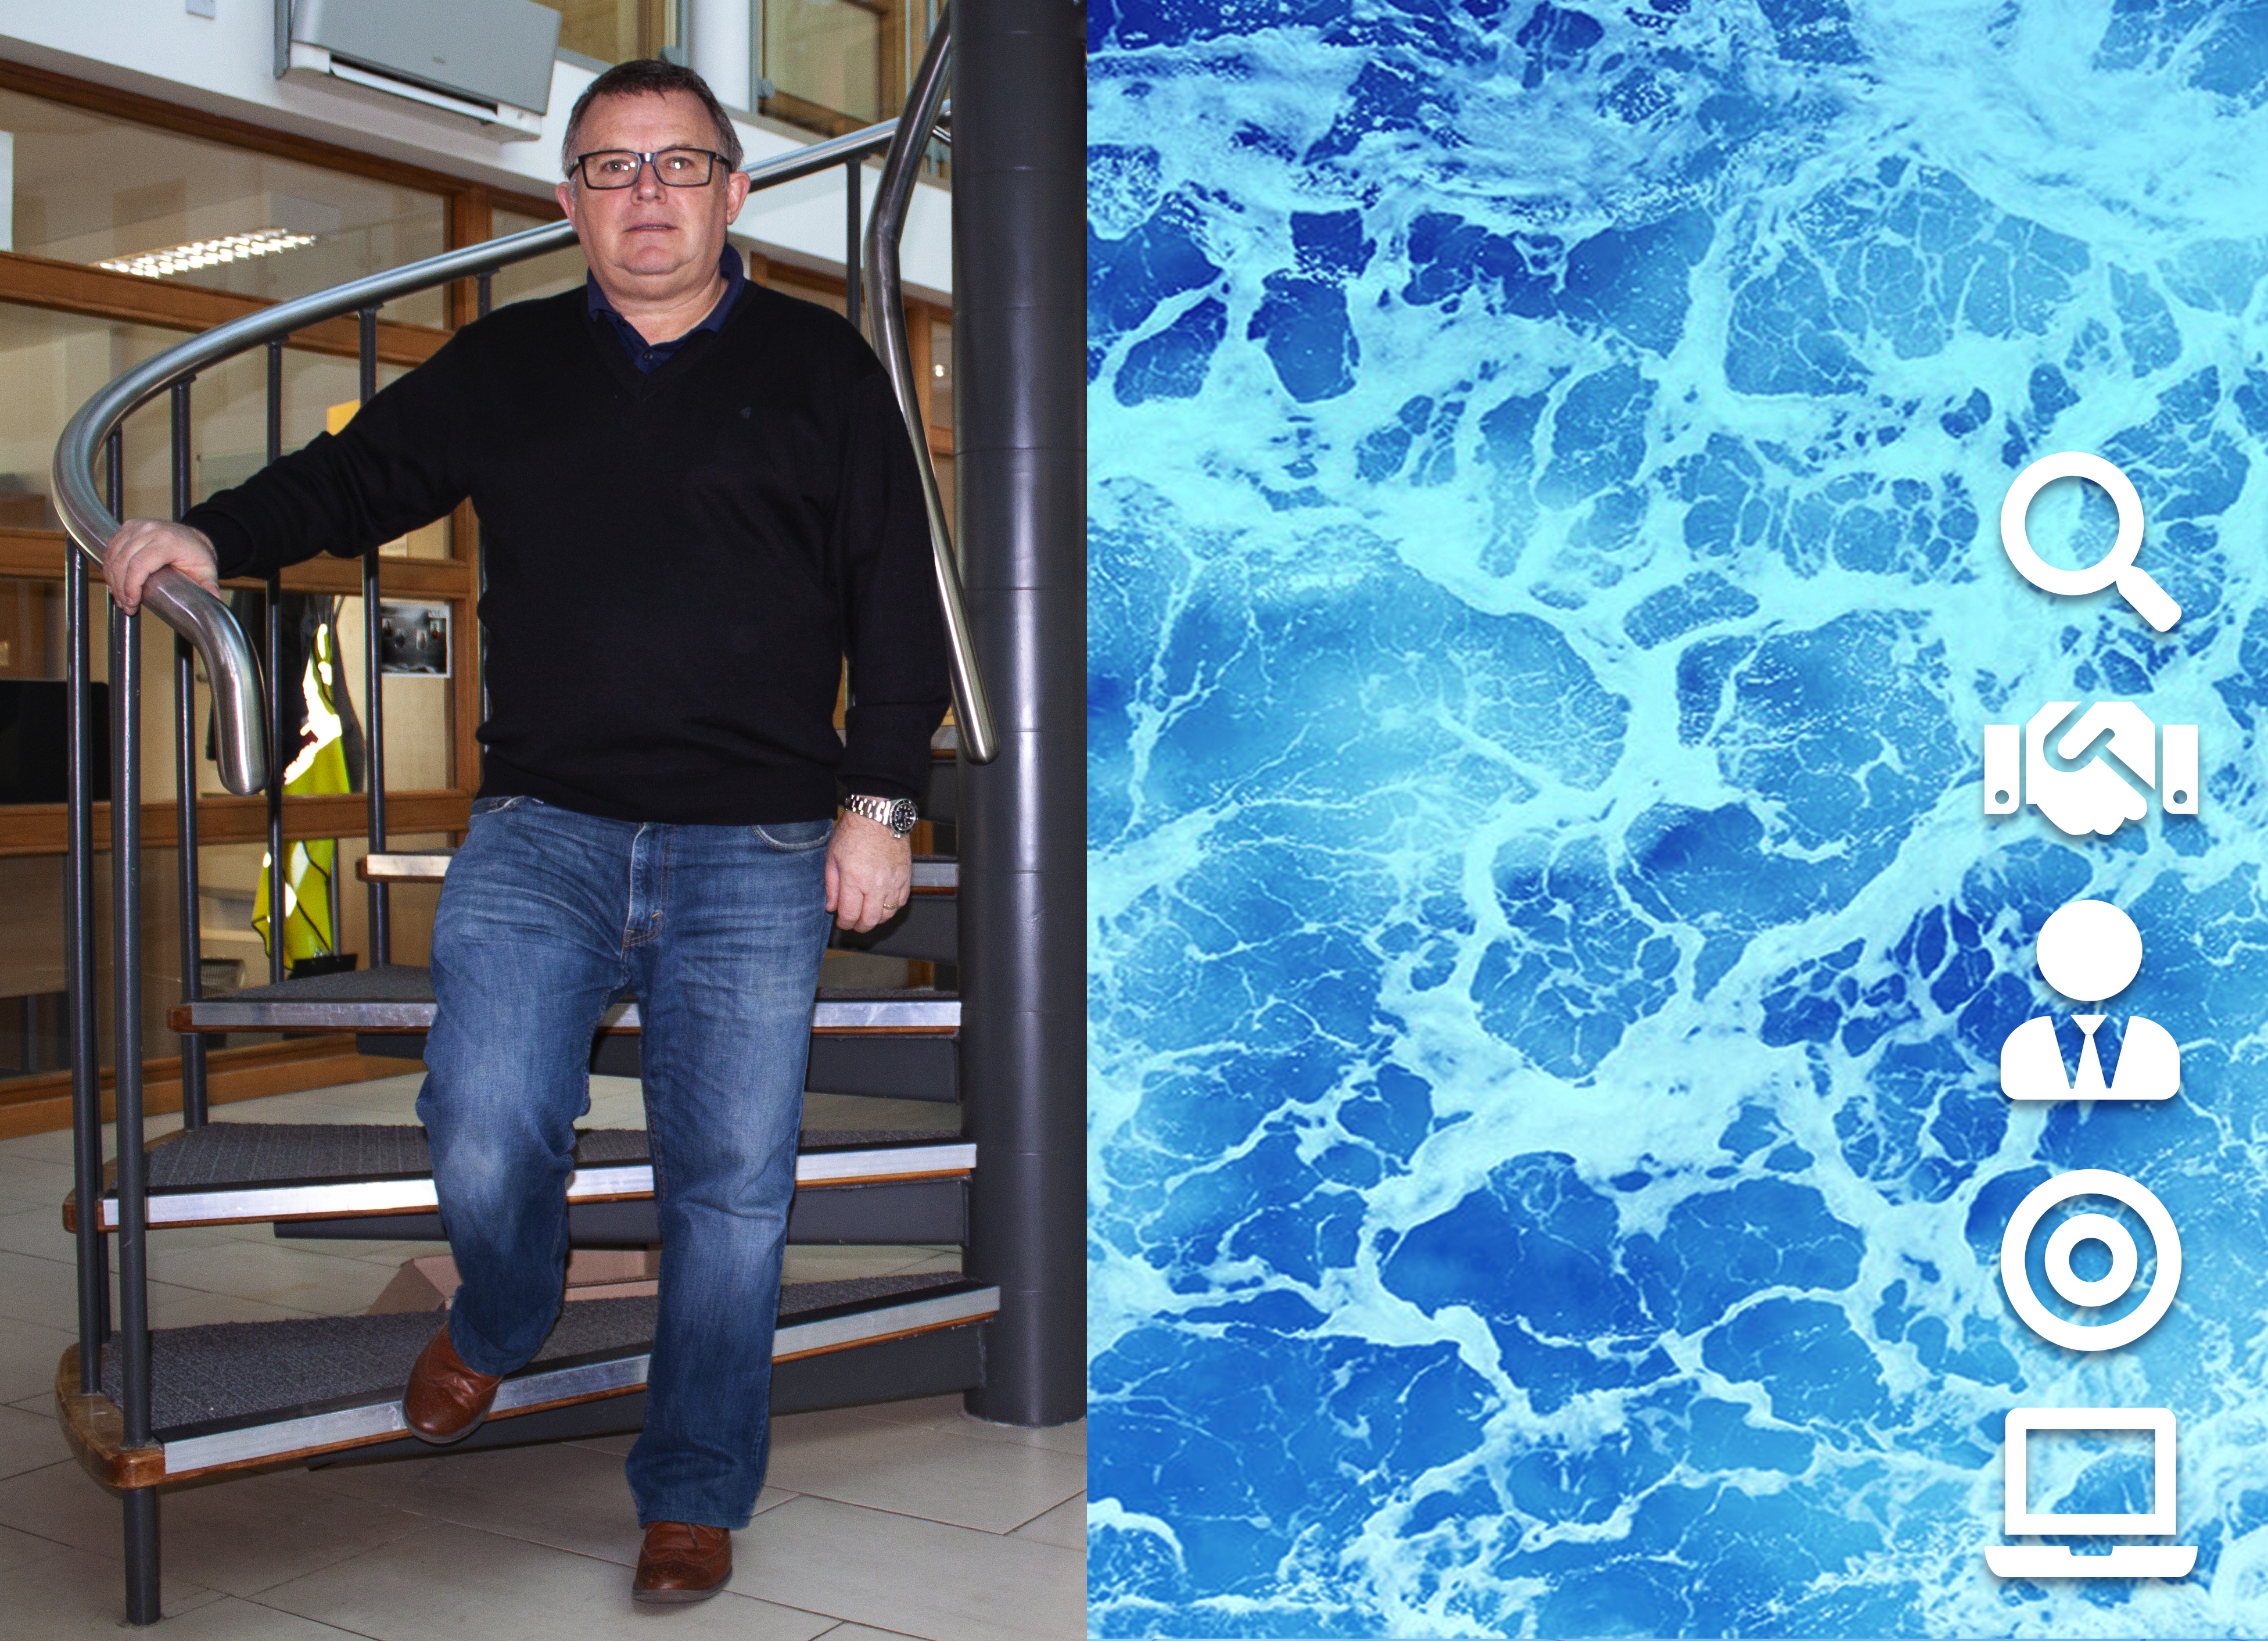 Alan Melia has joined Namaka Subsea, having previously been Technical Manager at the IMCA.